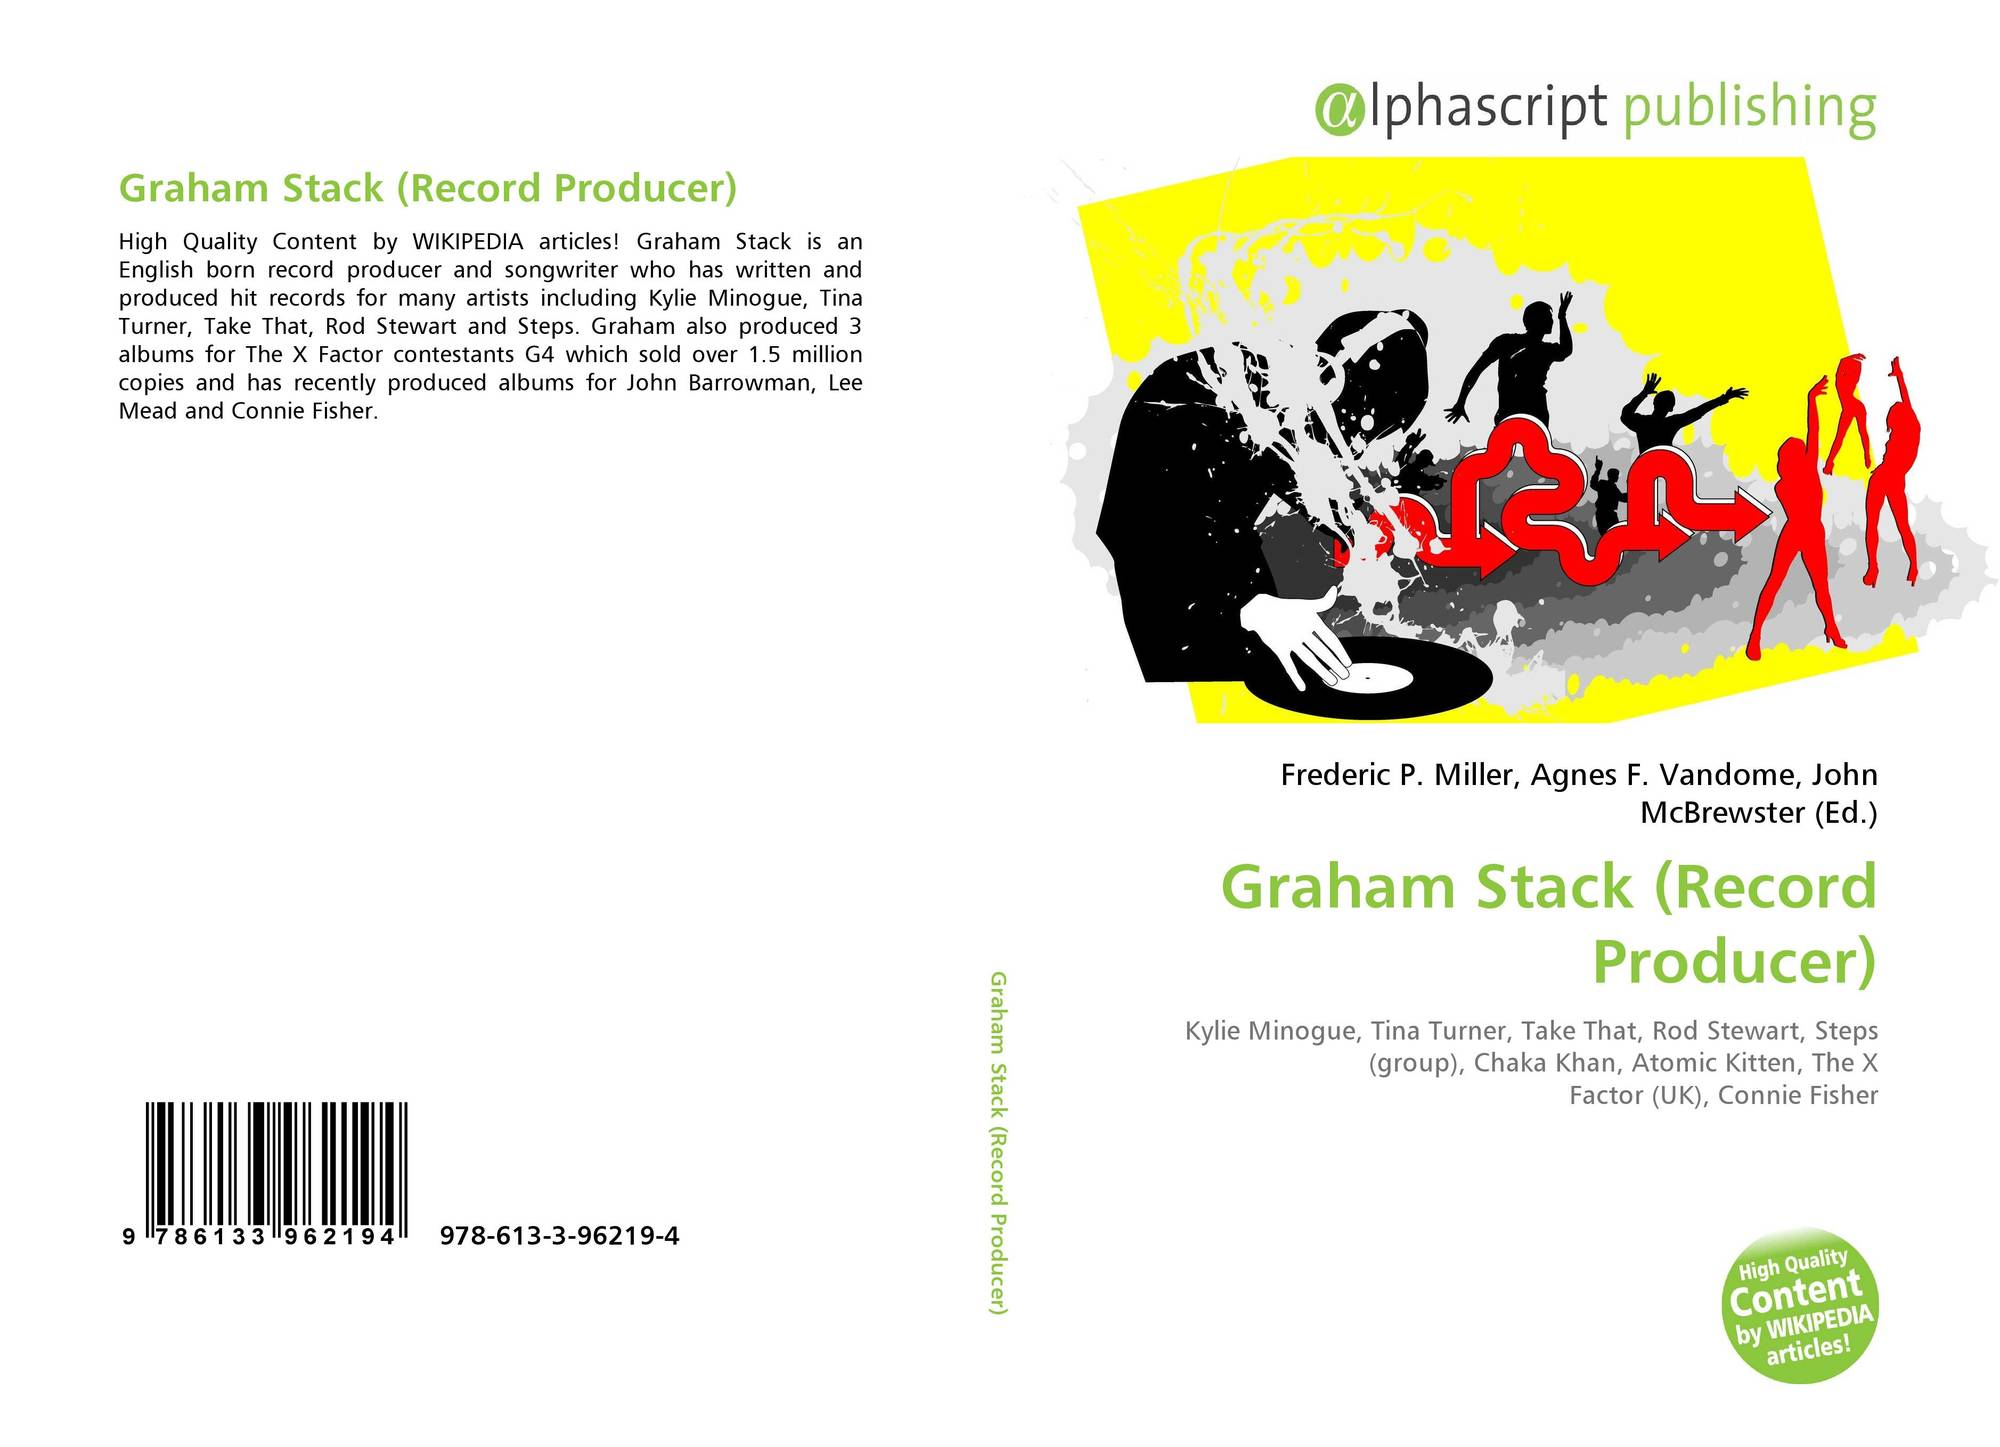 Graham Stack (Record Producer), 978-613-3-96219-4, 6133962194